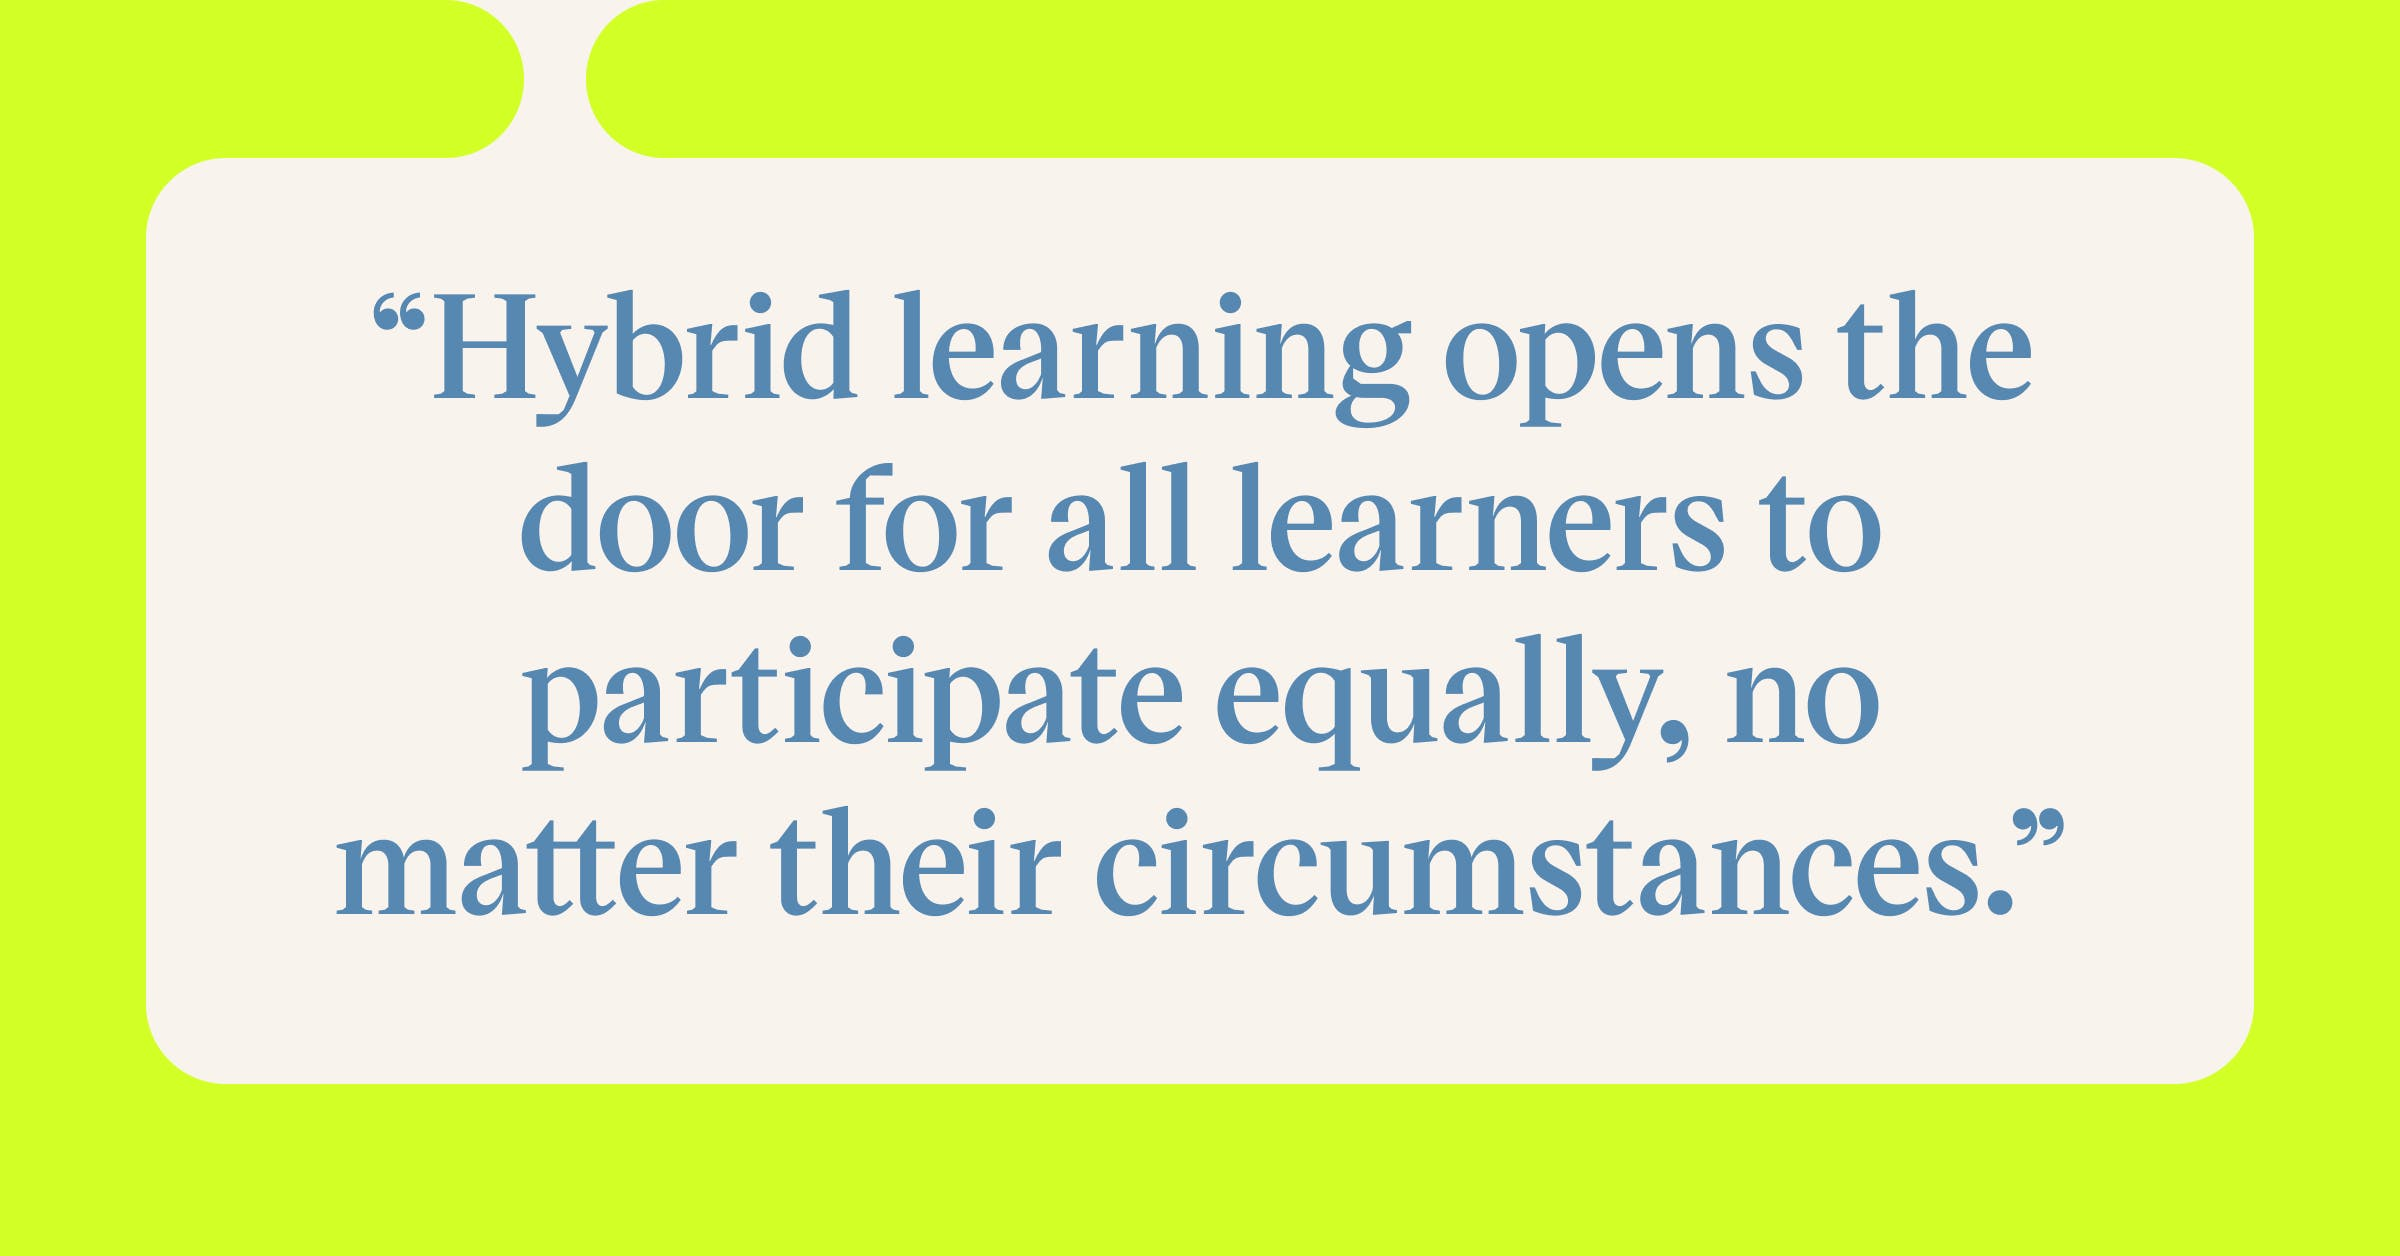 Pull quote with the text: Hybrid learning opens the door for all learners to participate equally, no matter their circumstances.